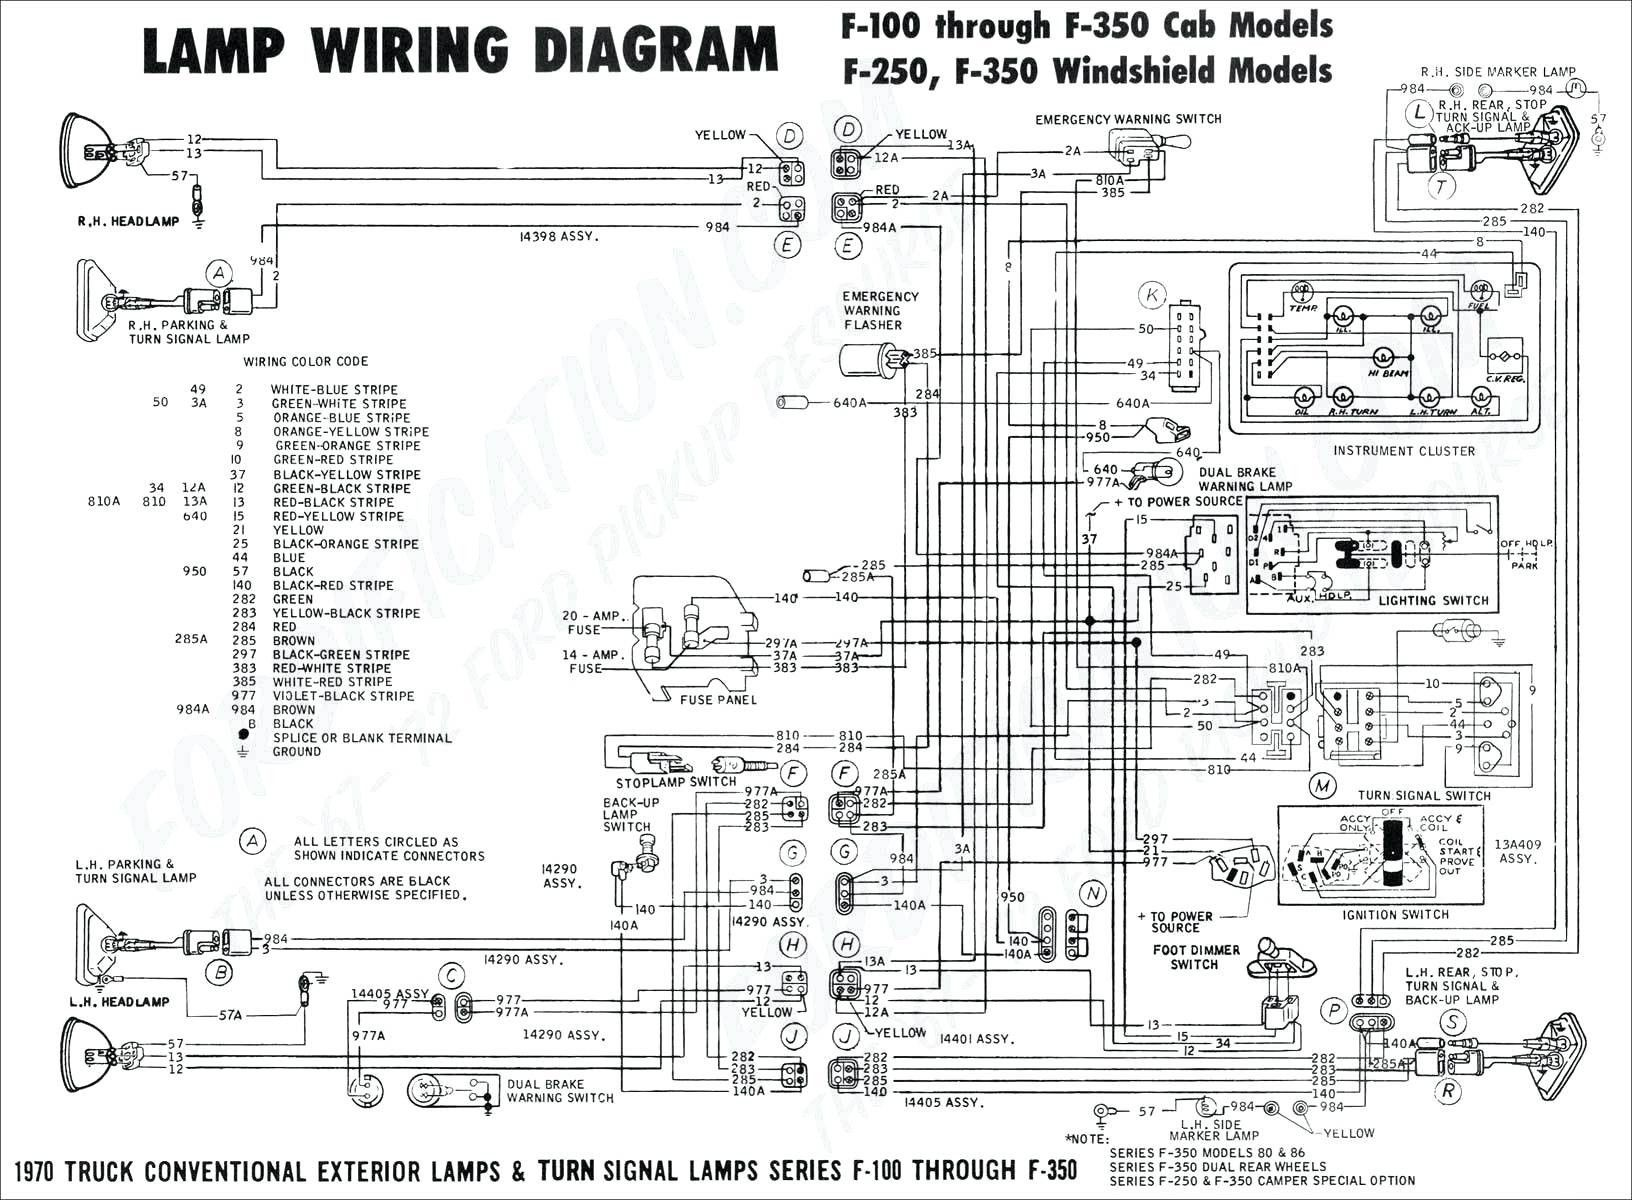 2005 Ford Expedition Engine Diagram In 2020 Trailer Wiring Diagram Electrical Wiring Diagram Circuit Diagram